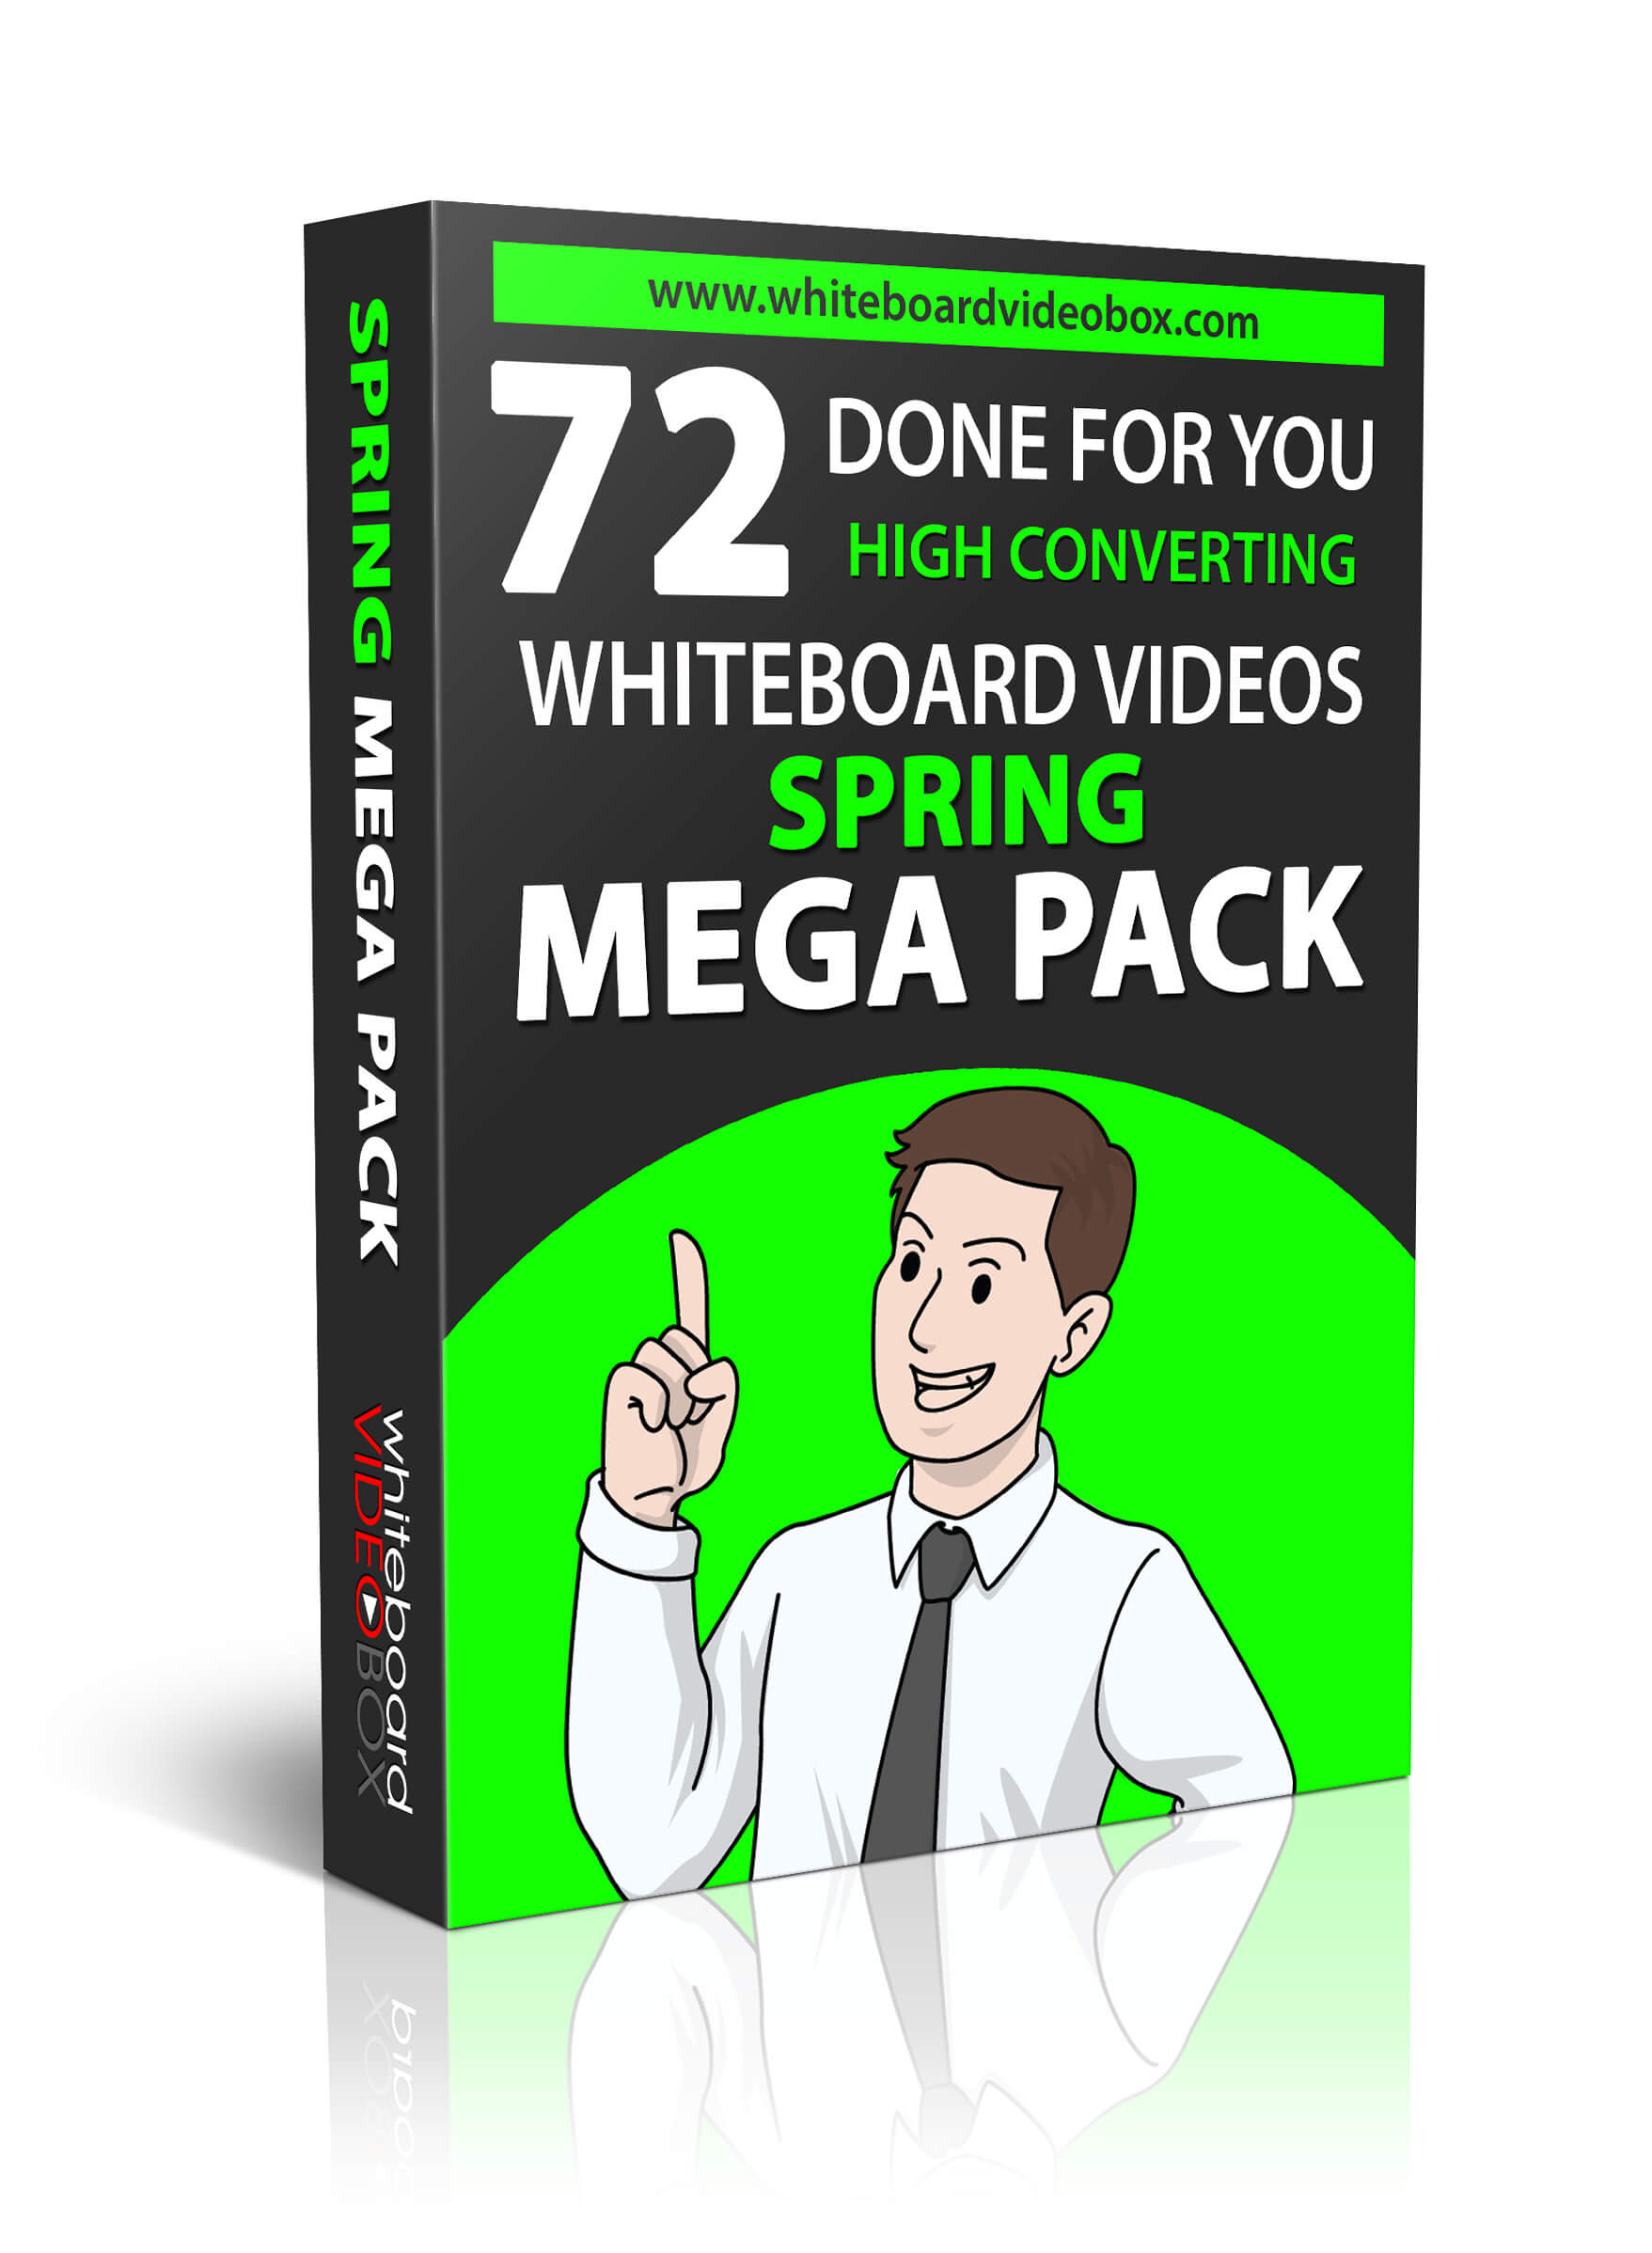 Whiteboard Video – Spring Mega Pack Review – Less than $1/ Whiteboard Video